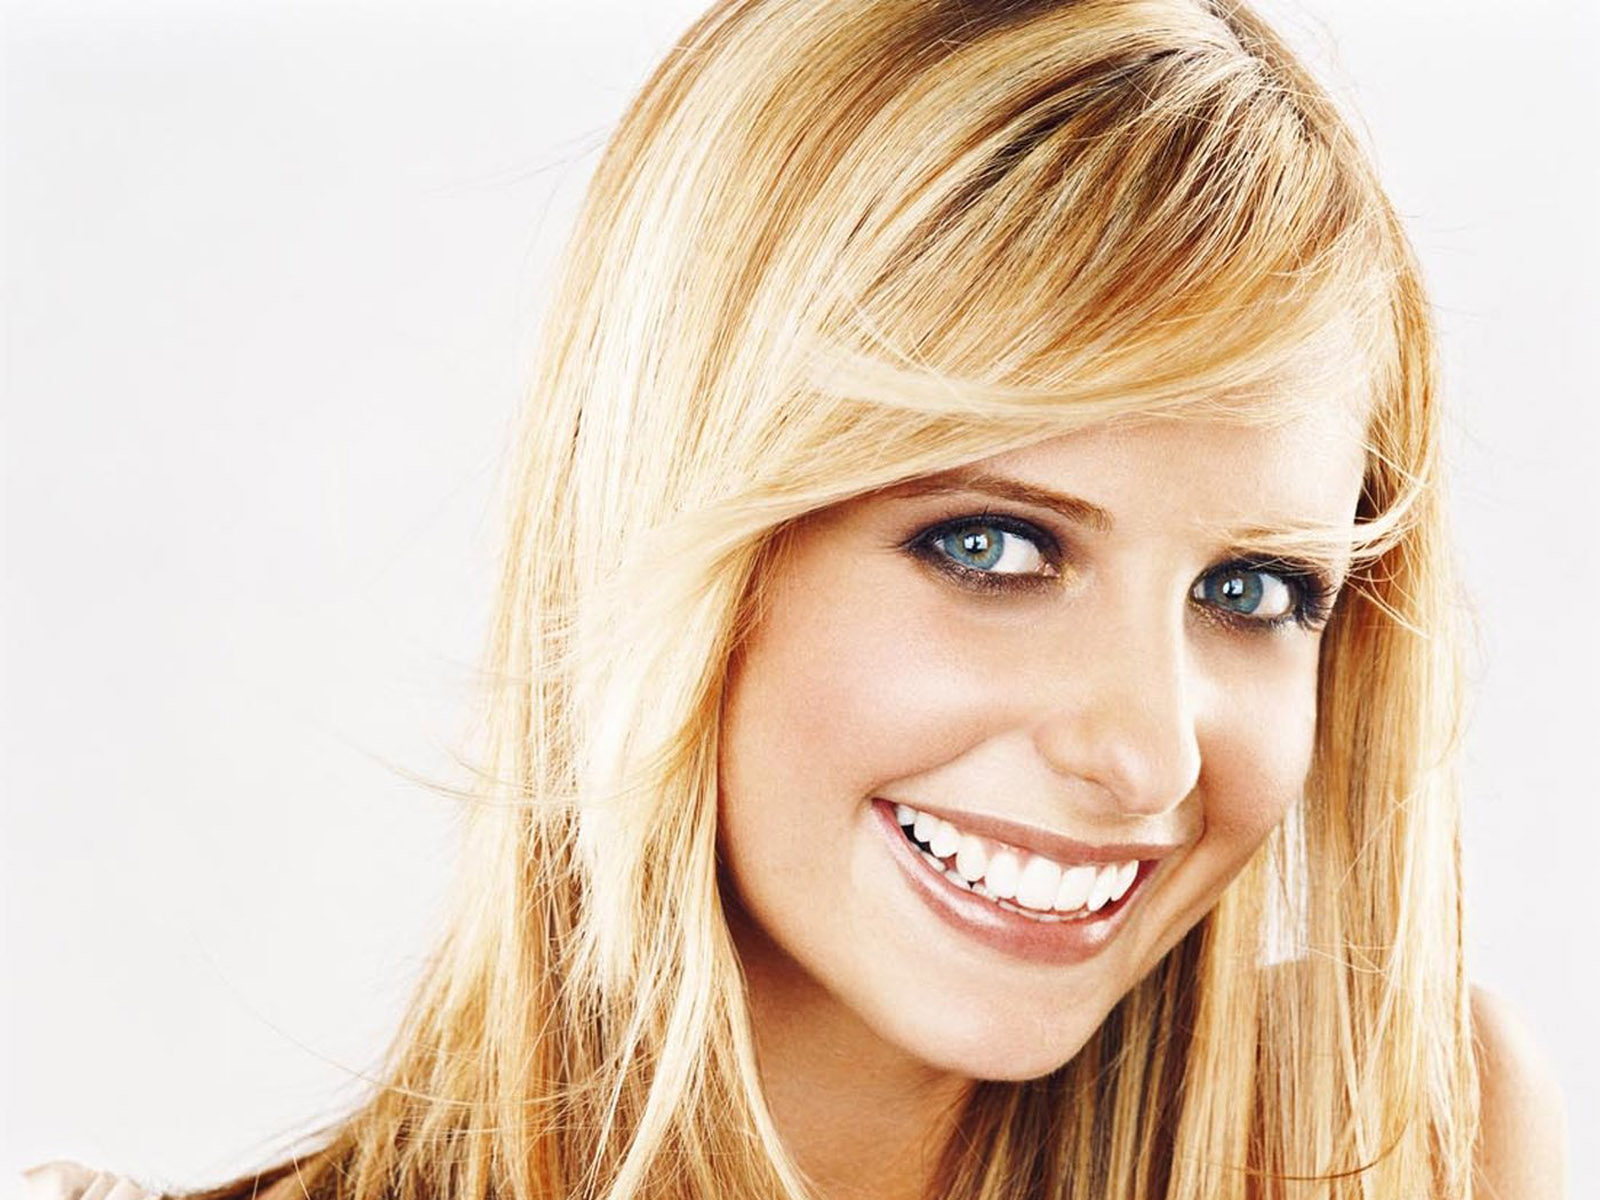 Happy Birthday Sarah Michelle Gellar 1600 x 1200 316 kB jpeg